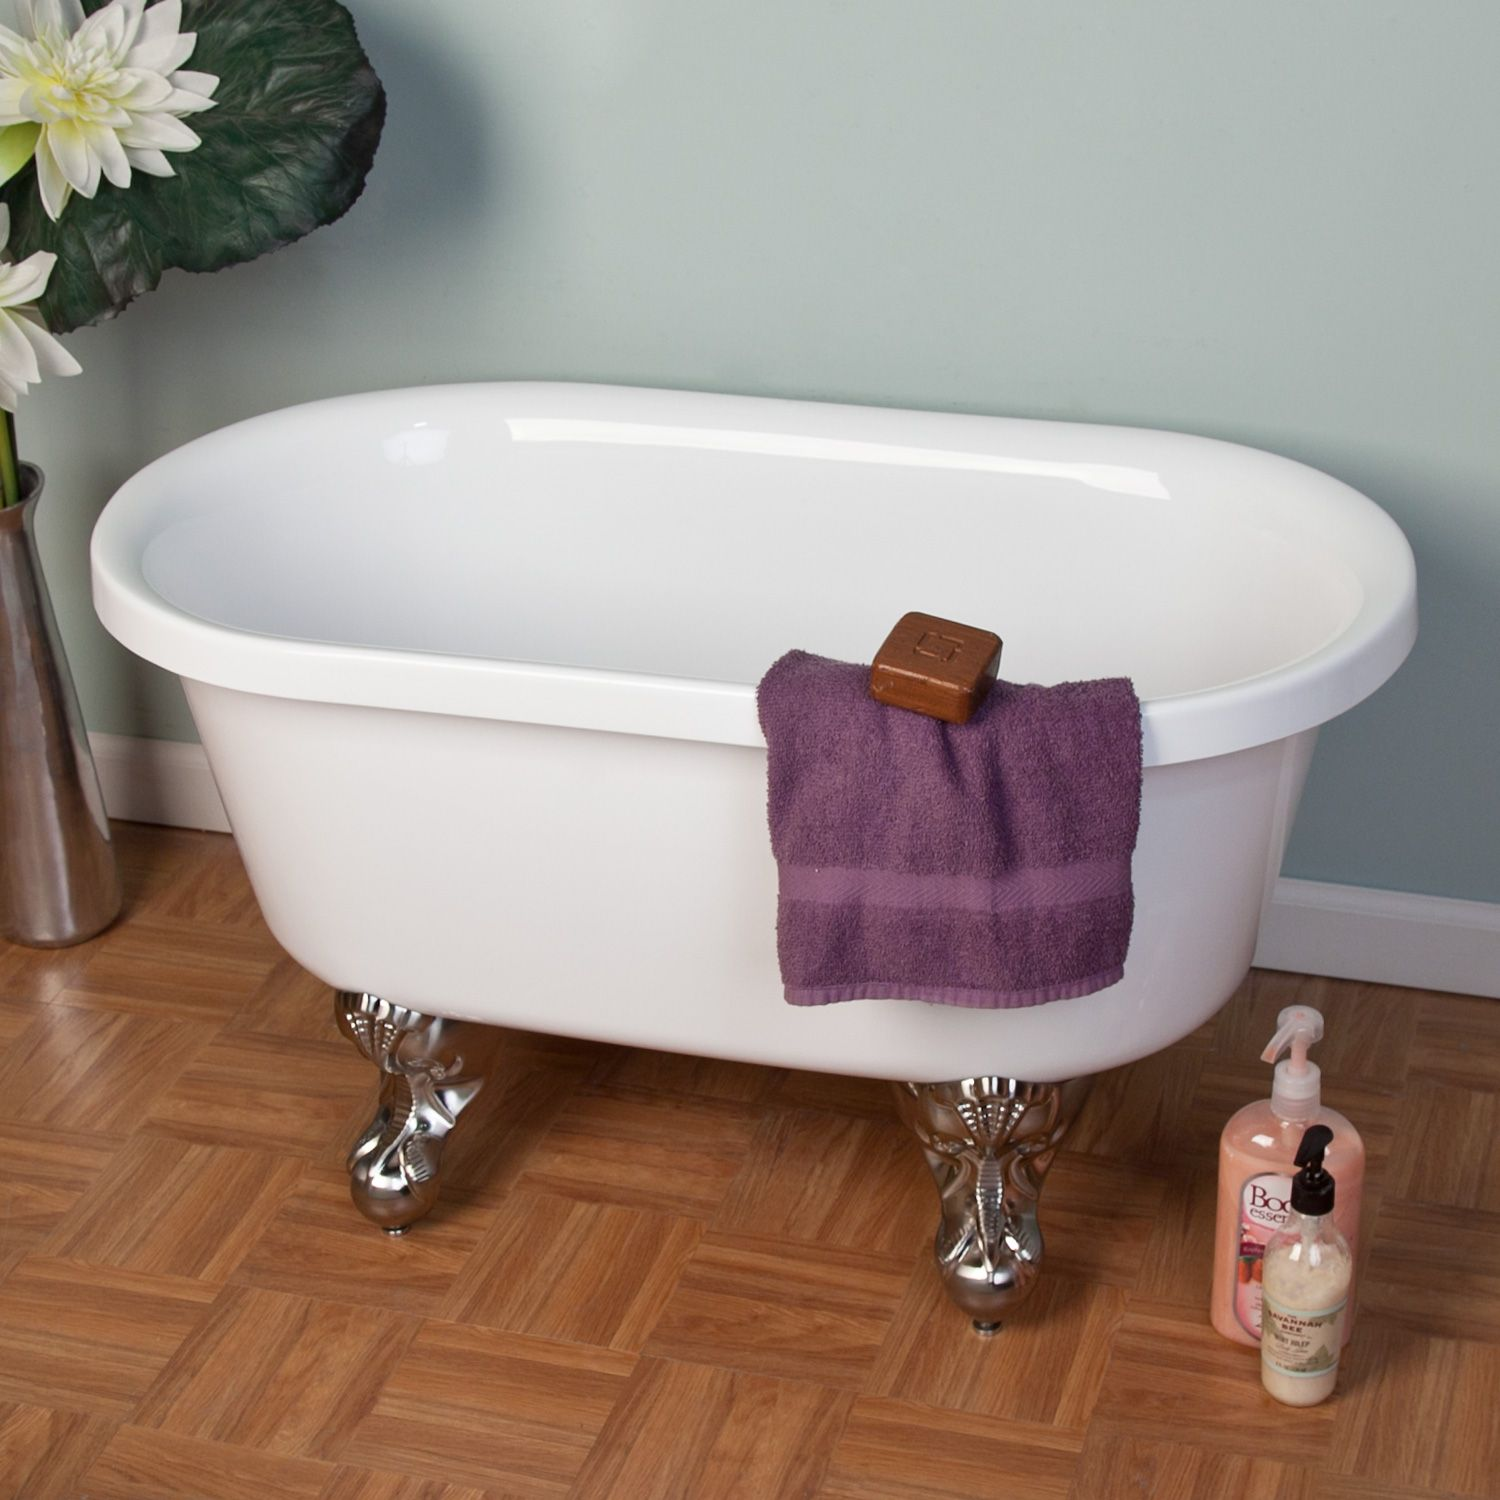 36 Quot Ella Double Ended Acrylic Mini Clawfoot Tub With Imperial Feet Clawfoot Tub Tiny House Bathtub Tub